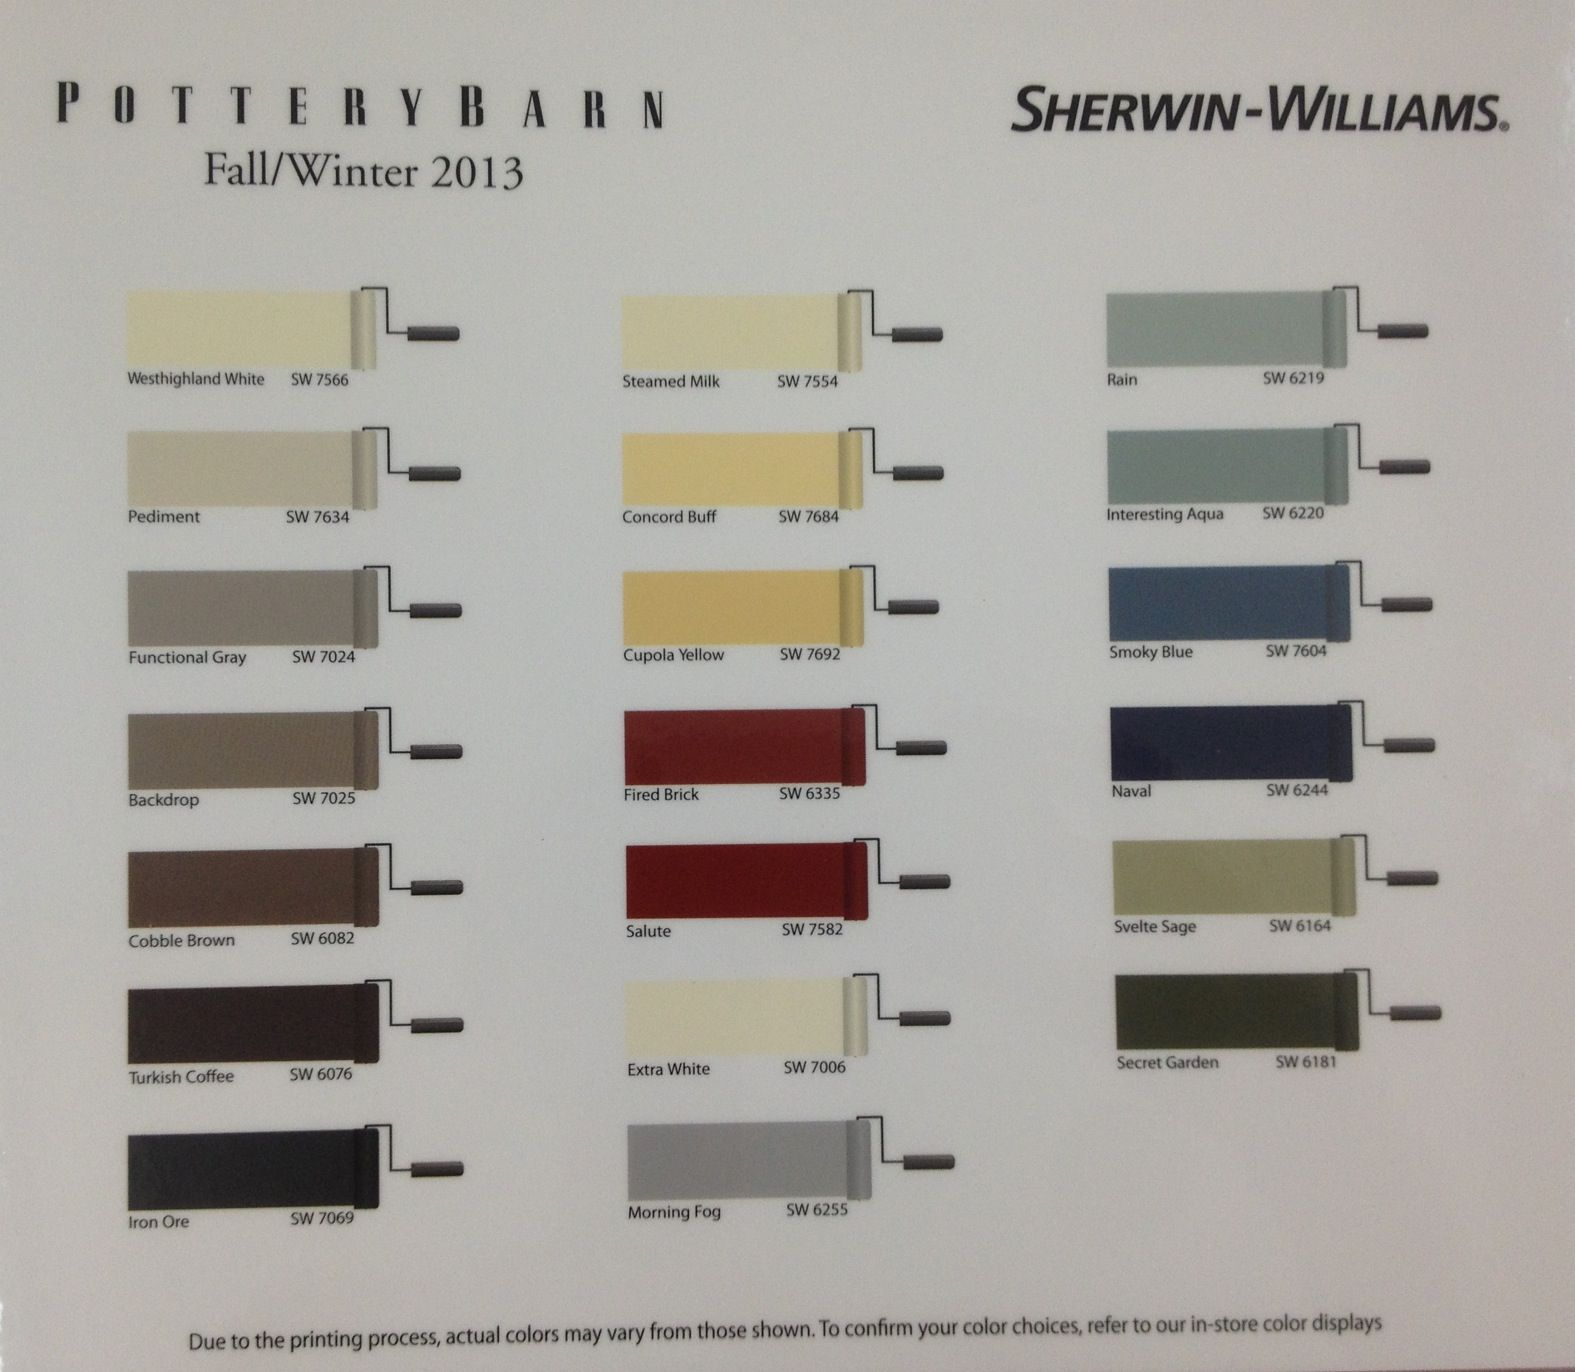 sherwin williams pottery barn paint colors fall winter 2013